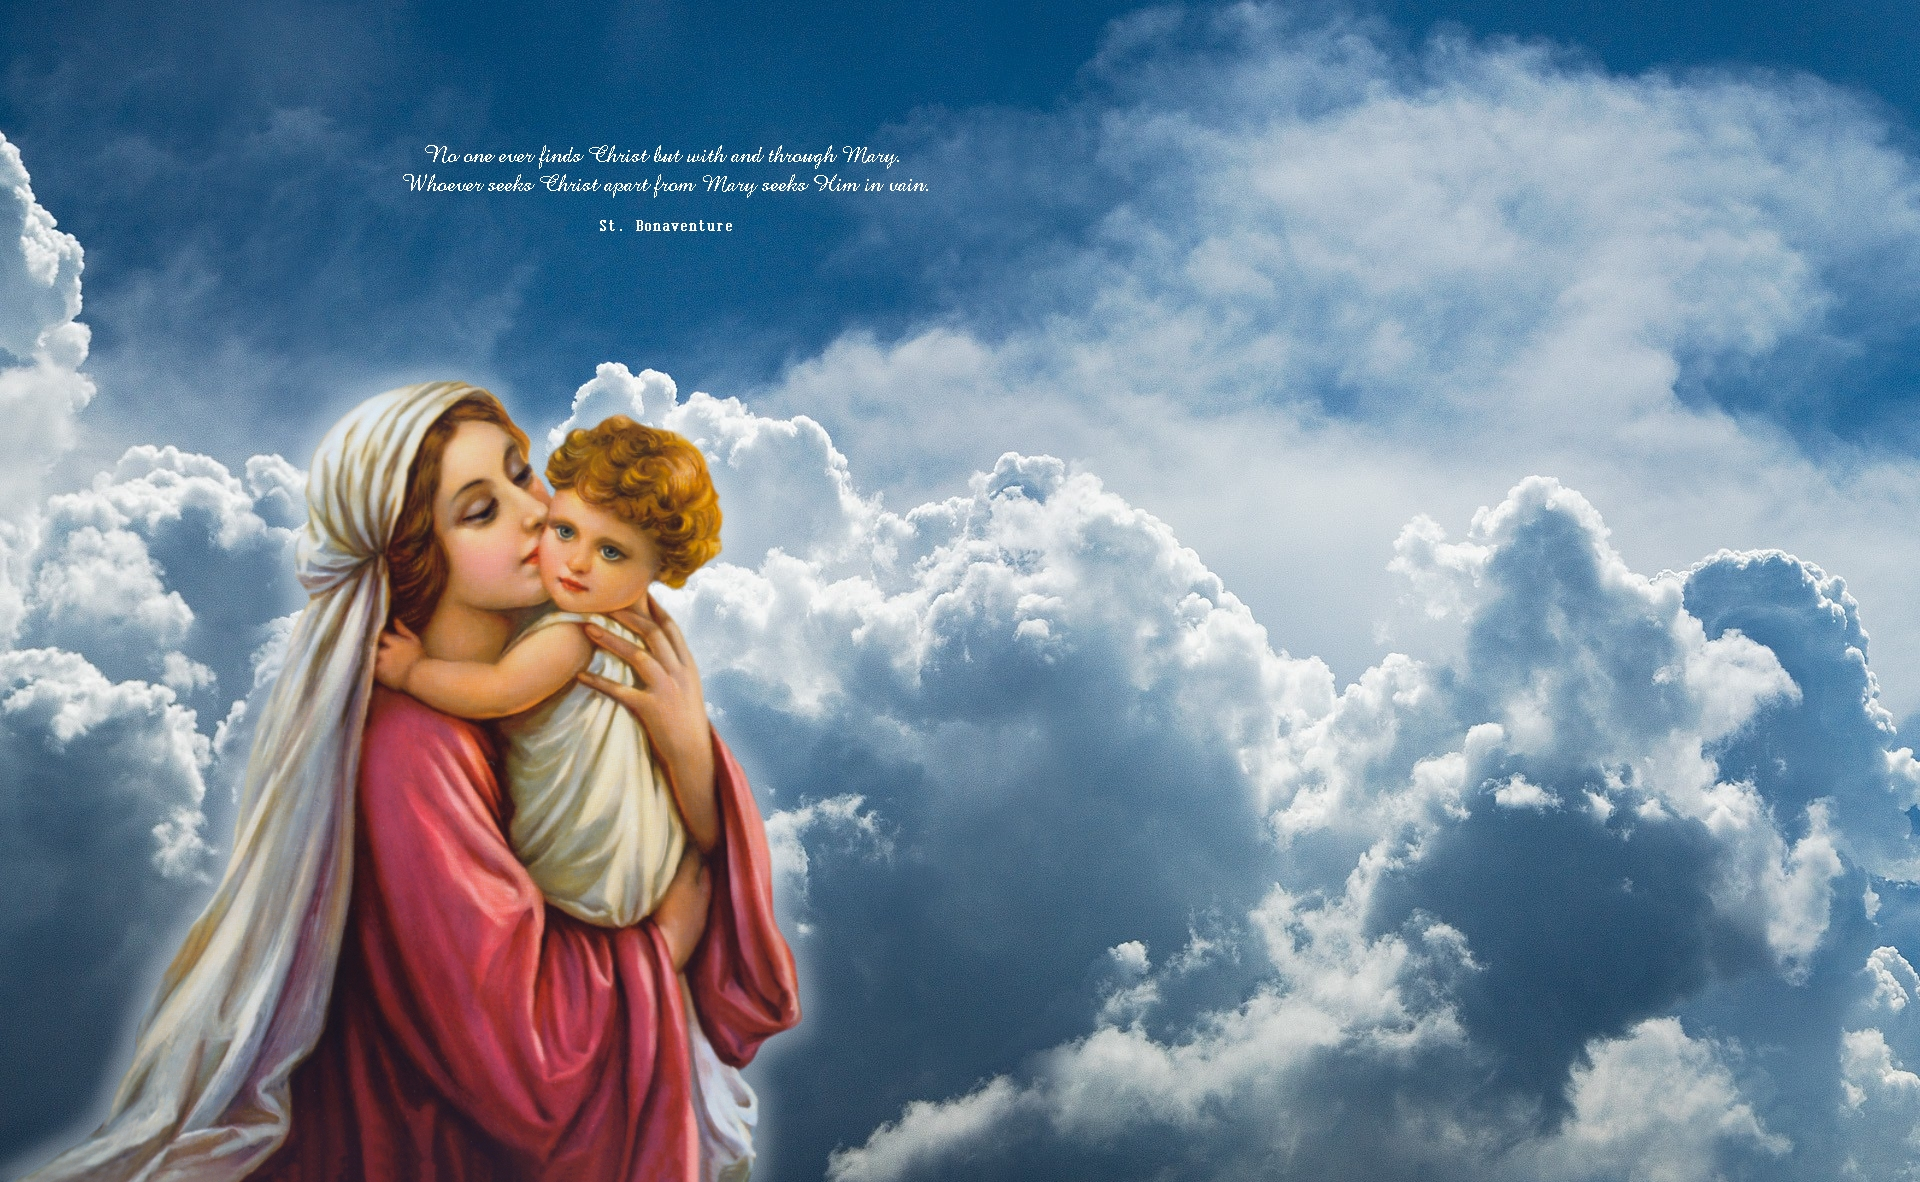 Gif Images Animated Wallpapers Vierge Virgin And Child Scenic Wallpapers